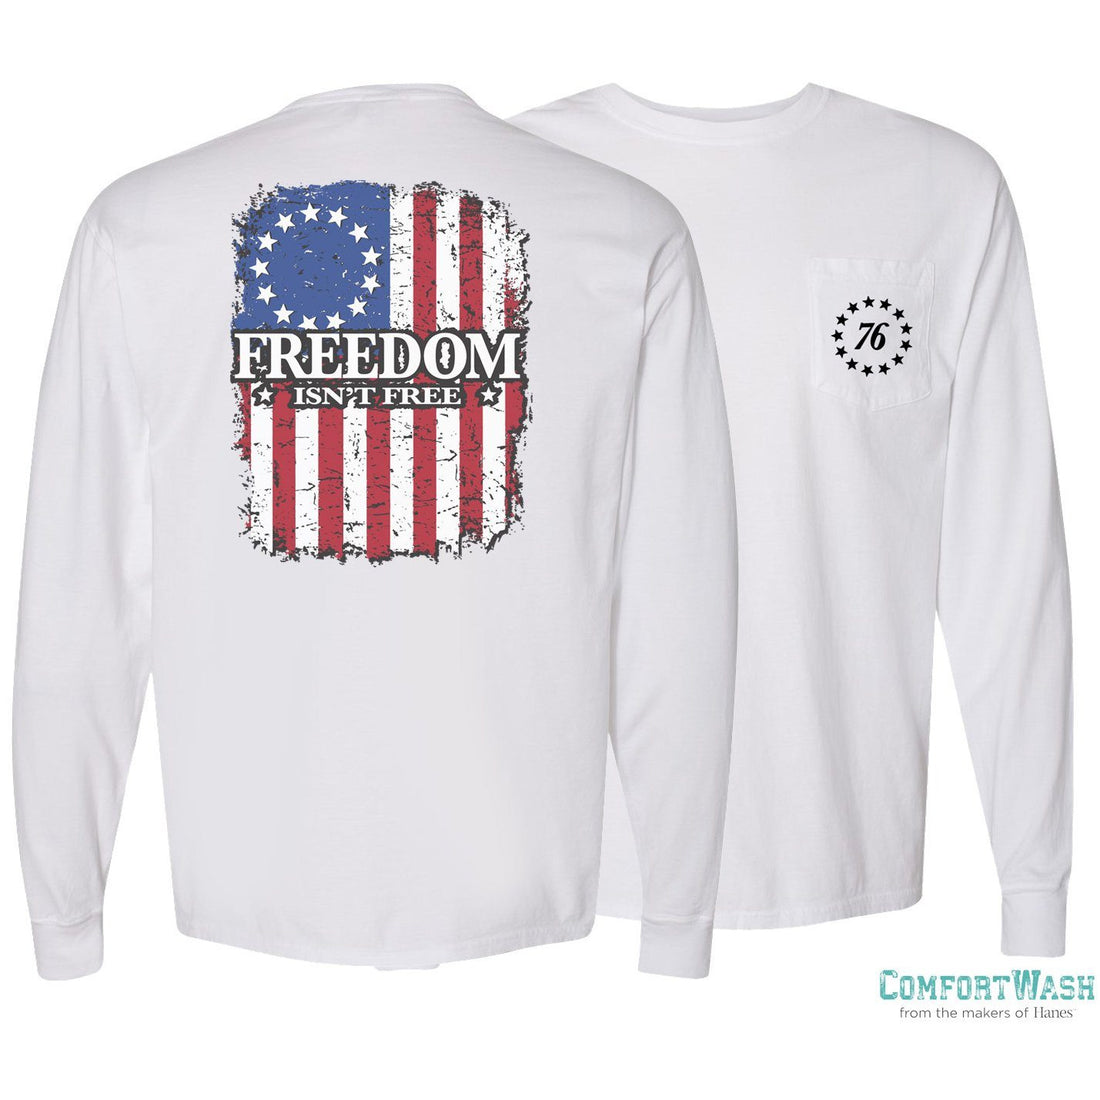 Freedom Isn't Free Comfort Wash Long Sleeve Pocket Tee